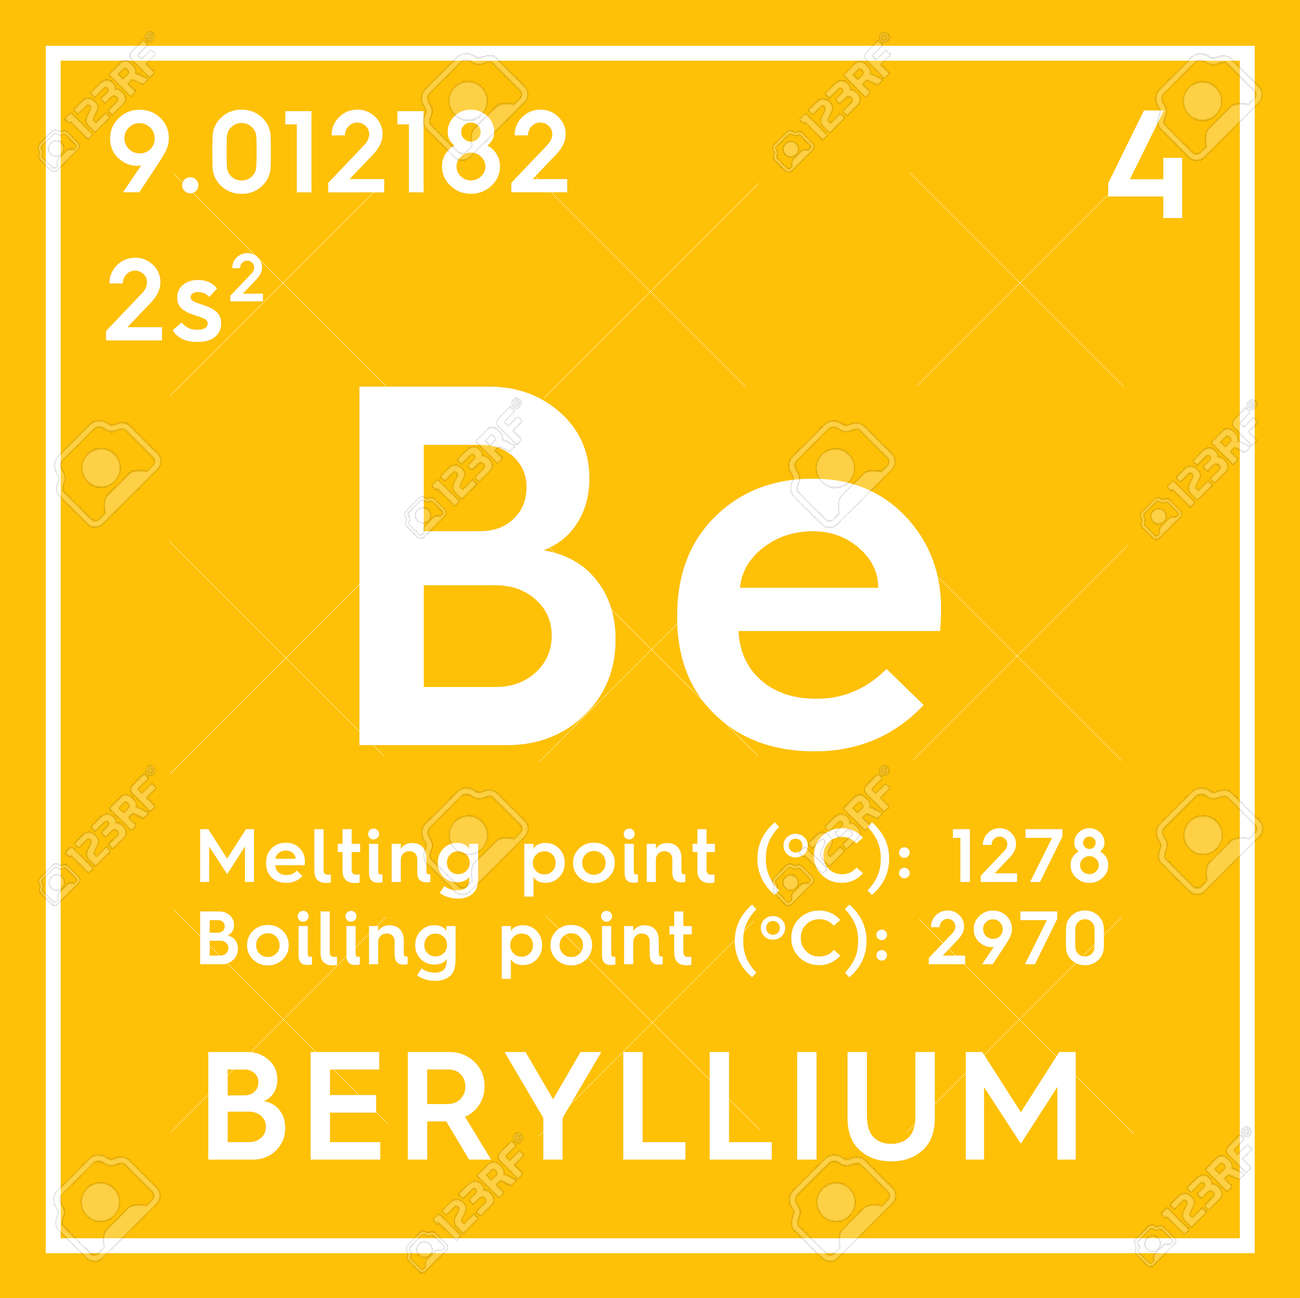 Beryllium alkaline earth metals chemical element of mendeleevs beryllium alkaline earth metals chemical element of mendeleevs periodic table beryllium in a urtaz